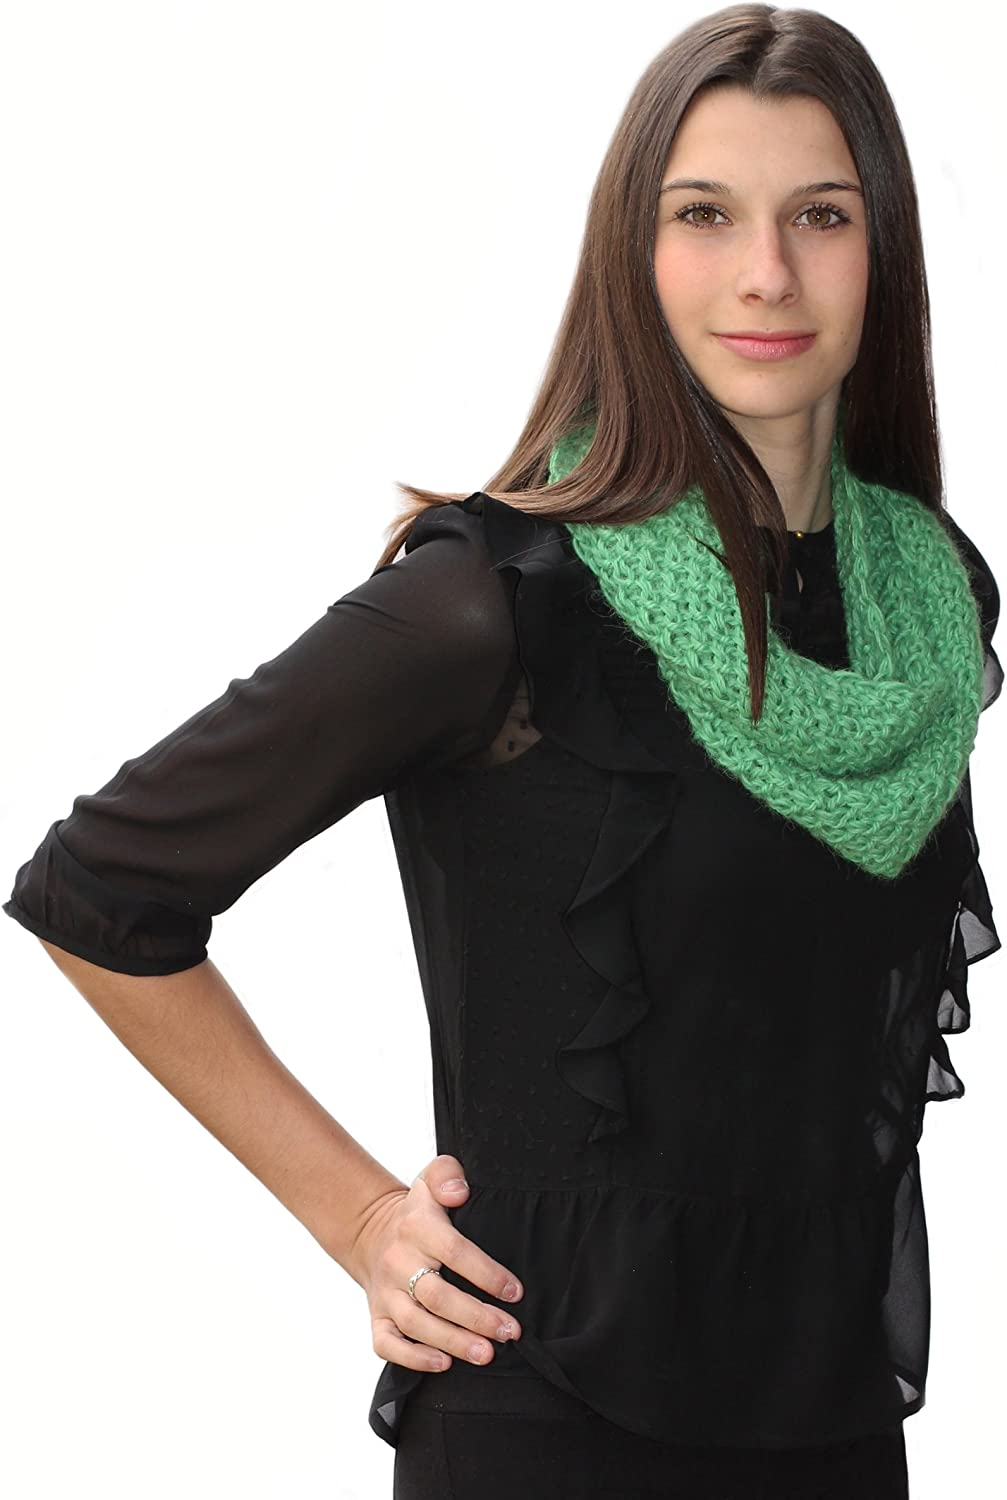 Alpaca Knitted Circular Scarf/Design Name: Morges (Apple Green)(Ships from France)